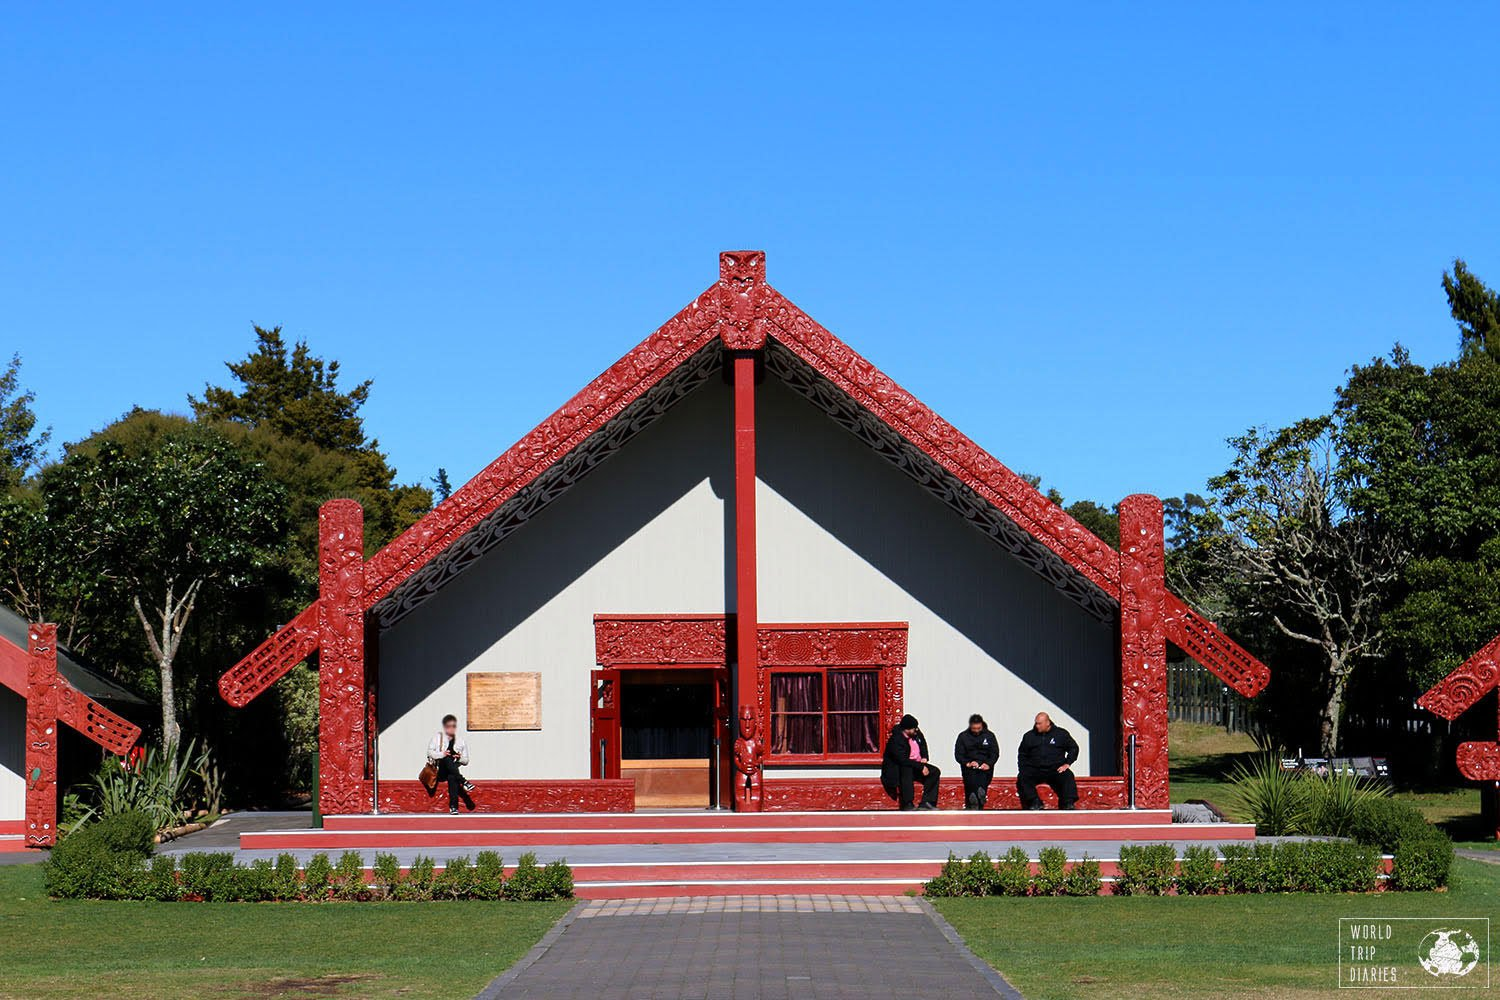 South Pacific Island Vacation destinations - Rotorua maori meeting house